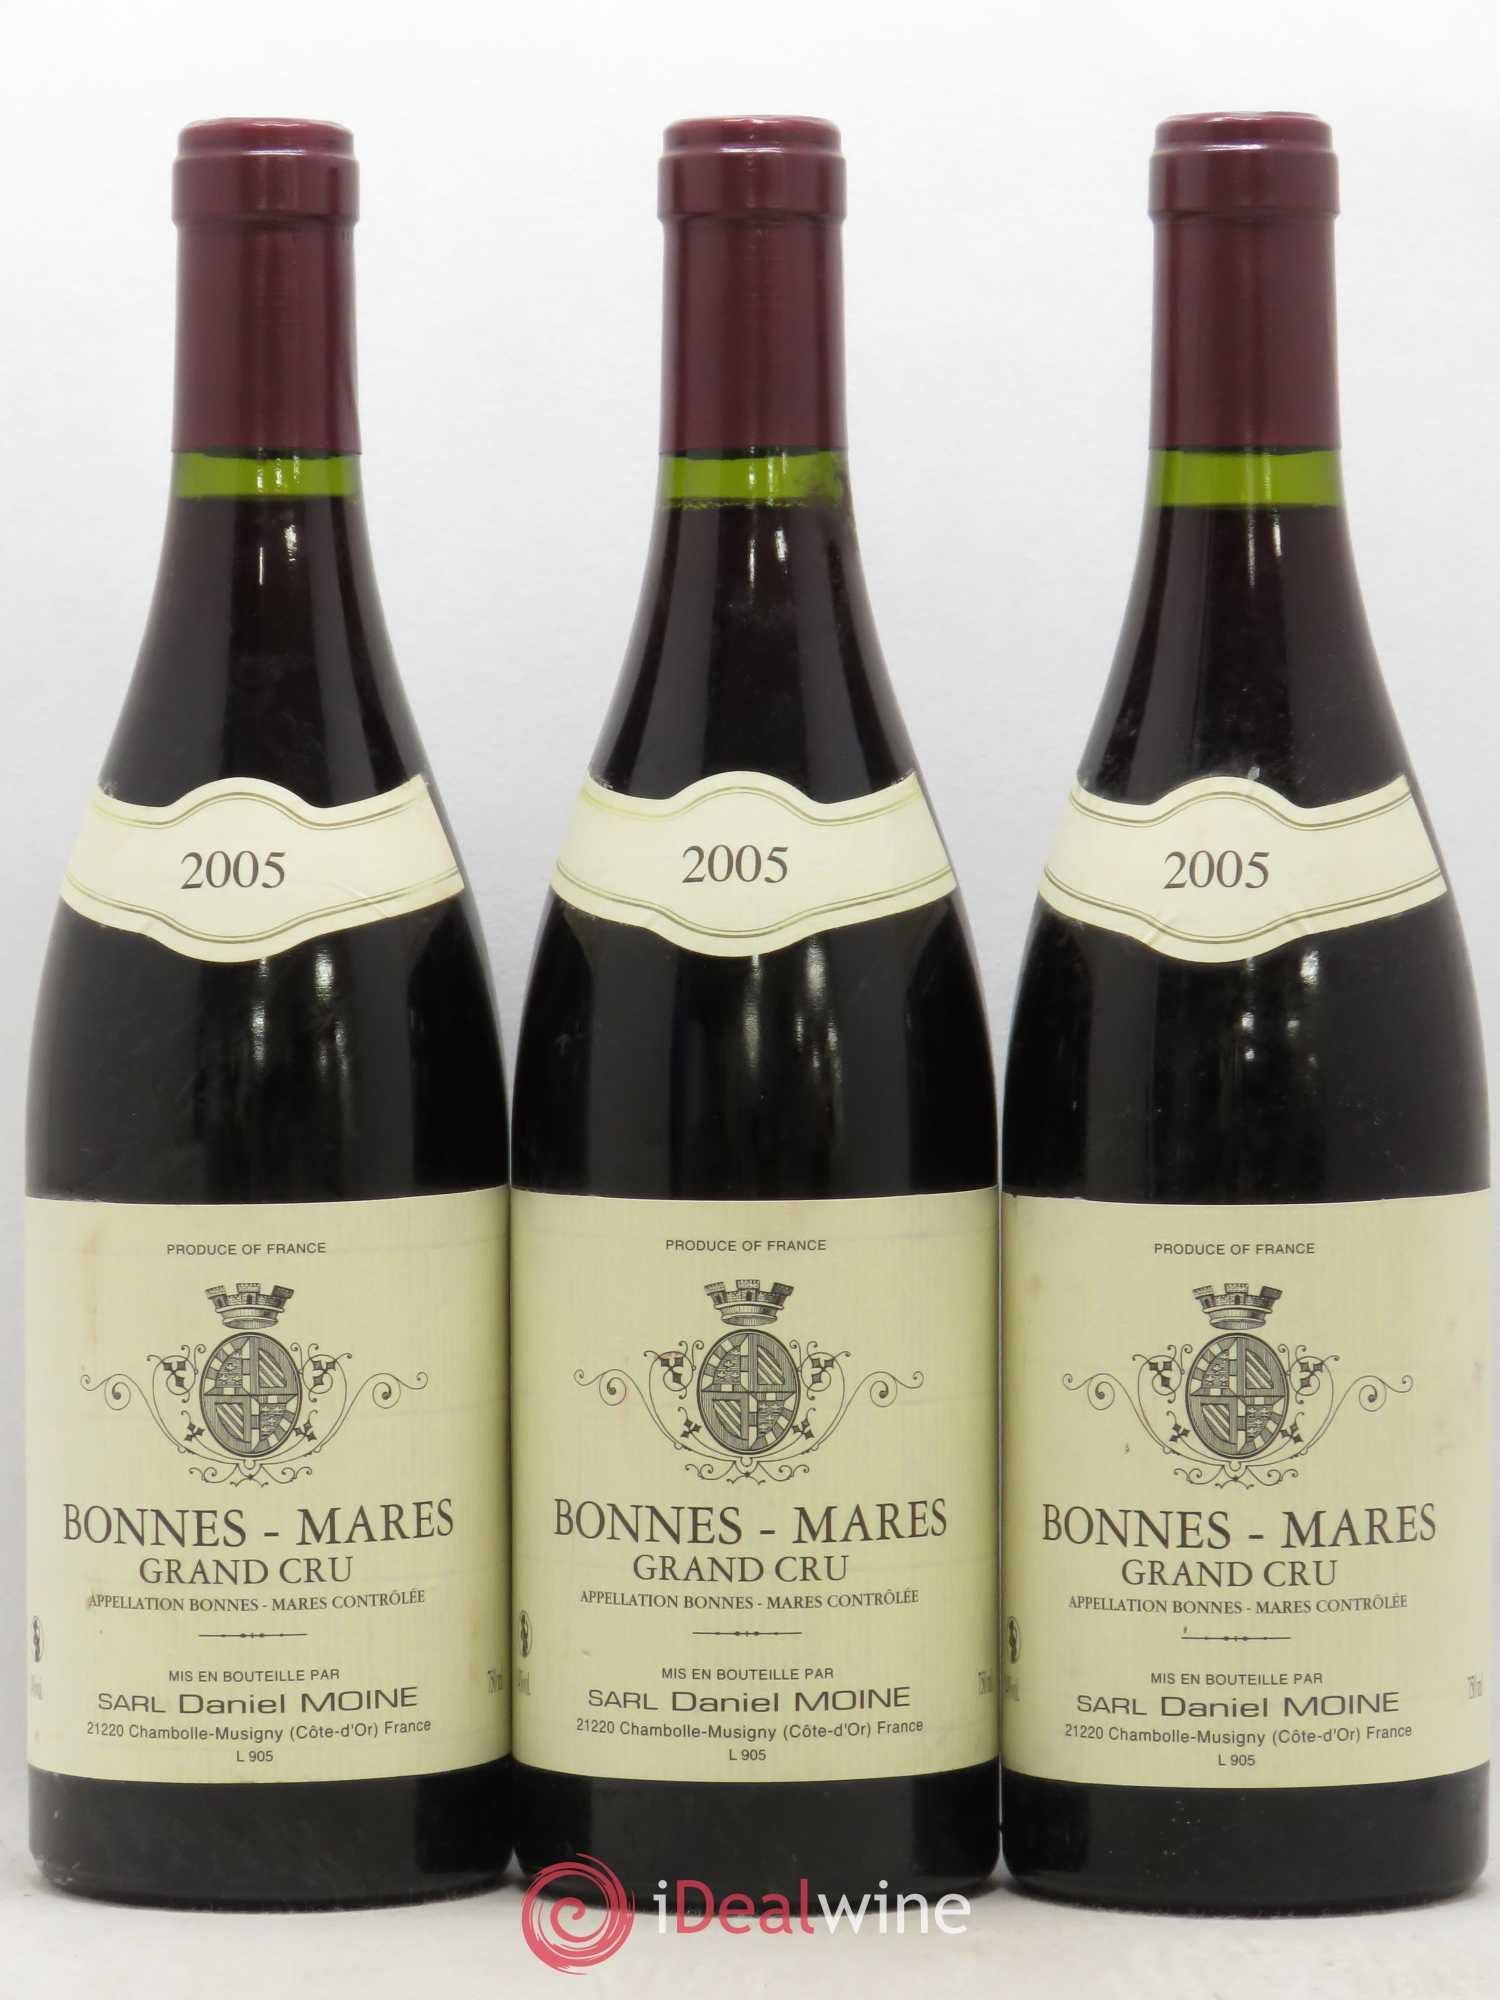 Bonnes-Mares Grand Cru Daniel Moine 2005 - Lot of 3 Bottles